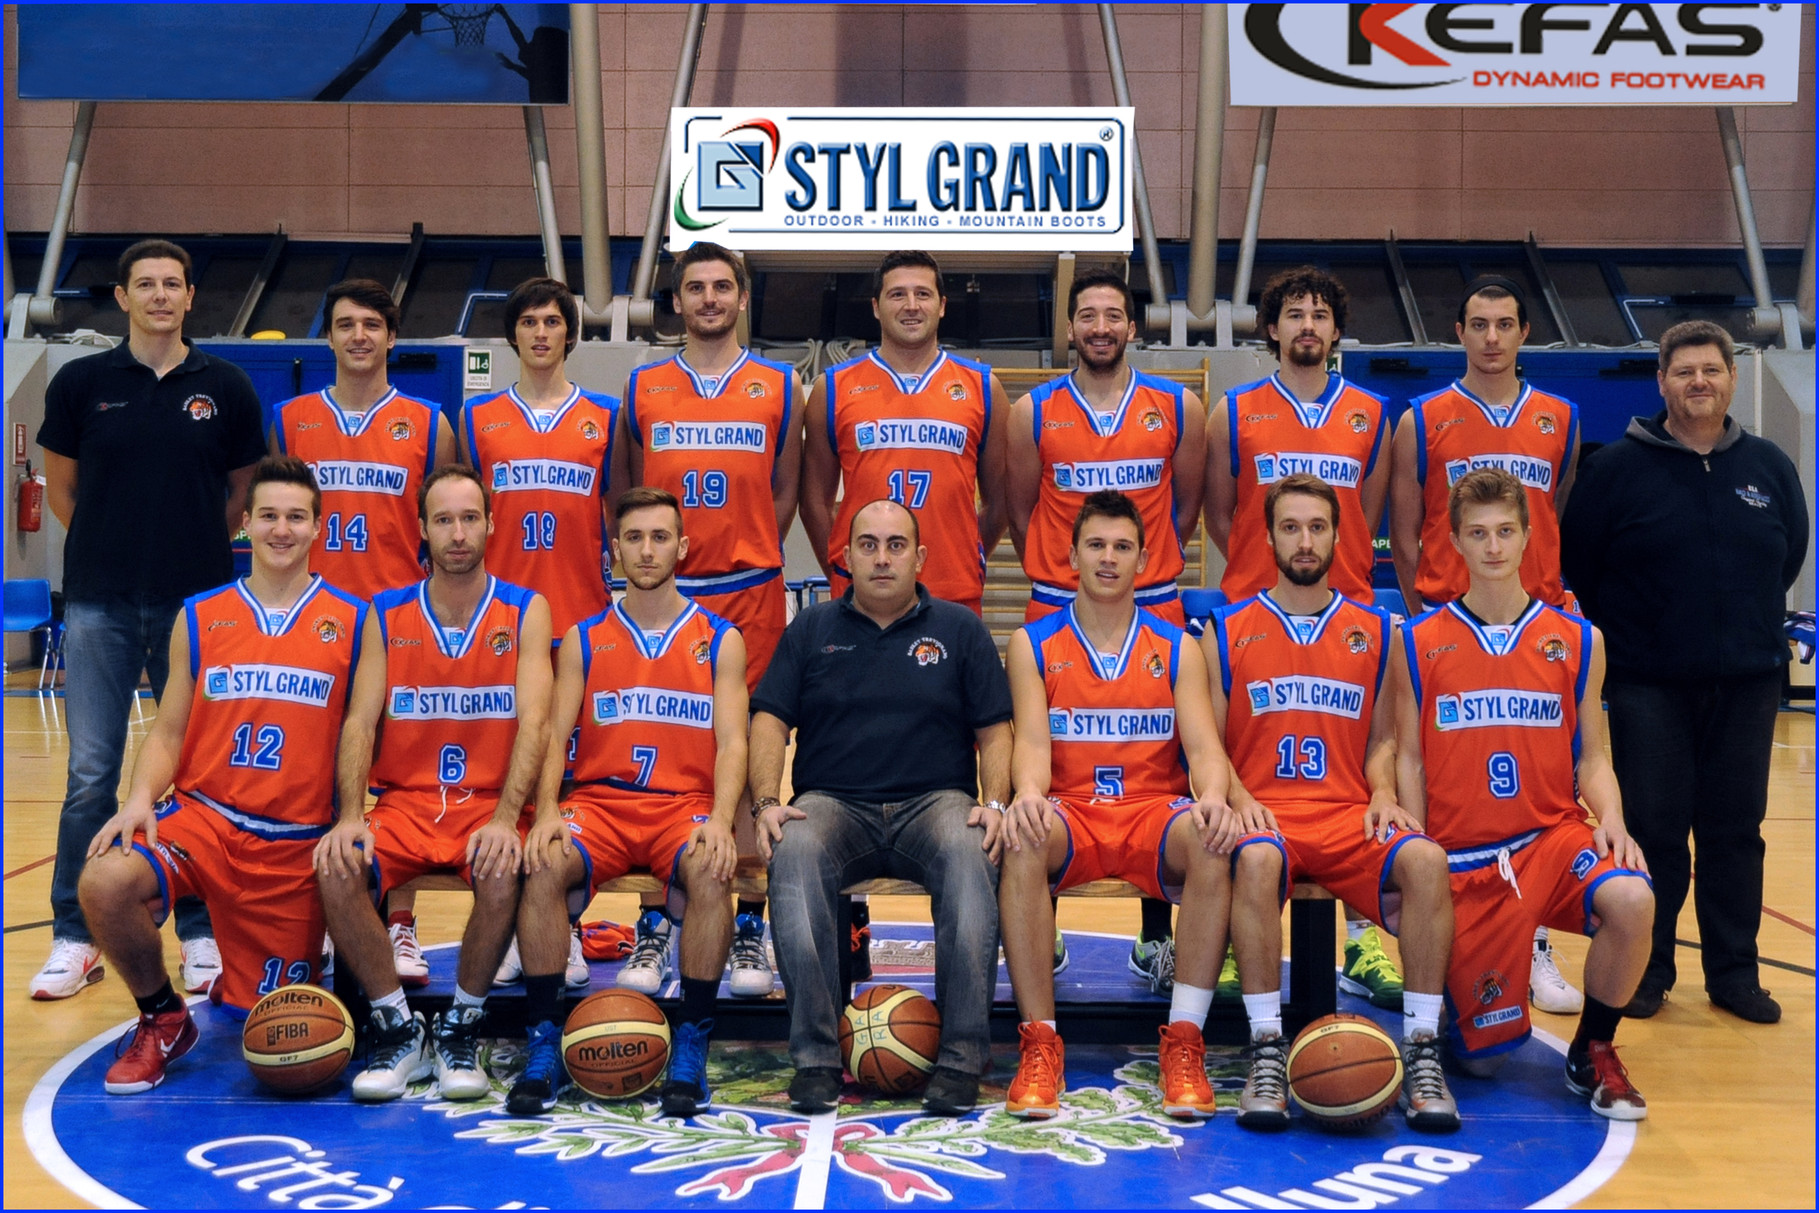 stagione 2013/14